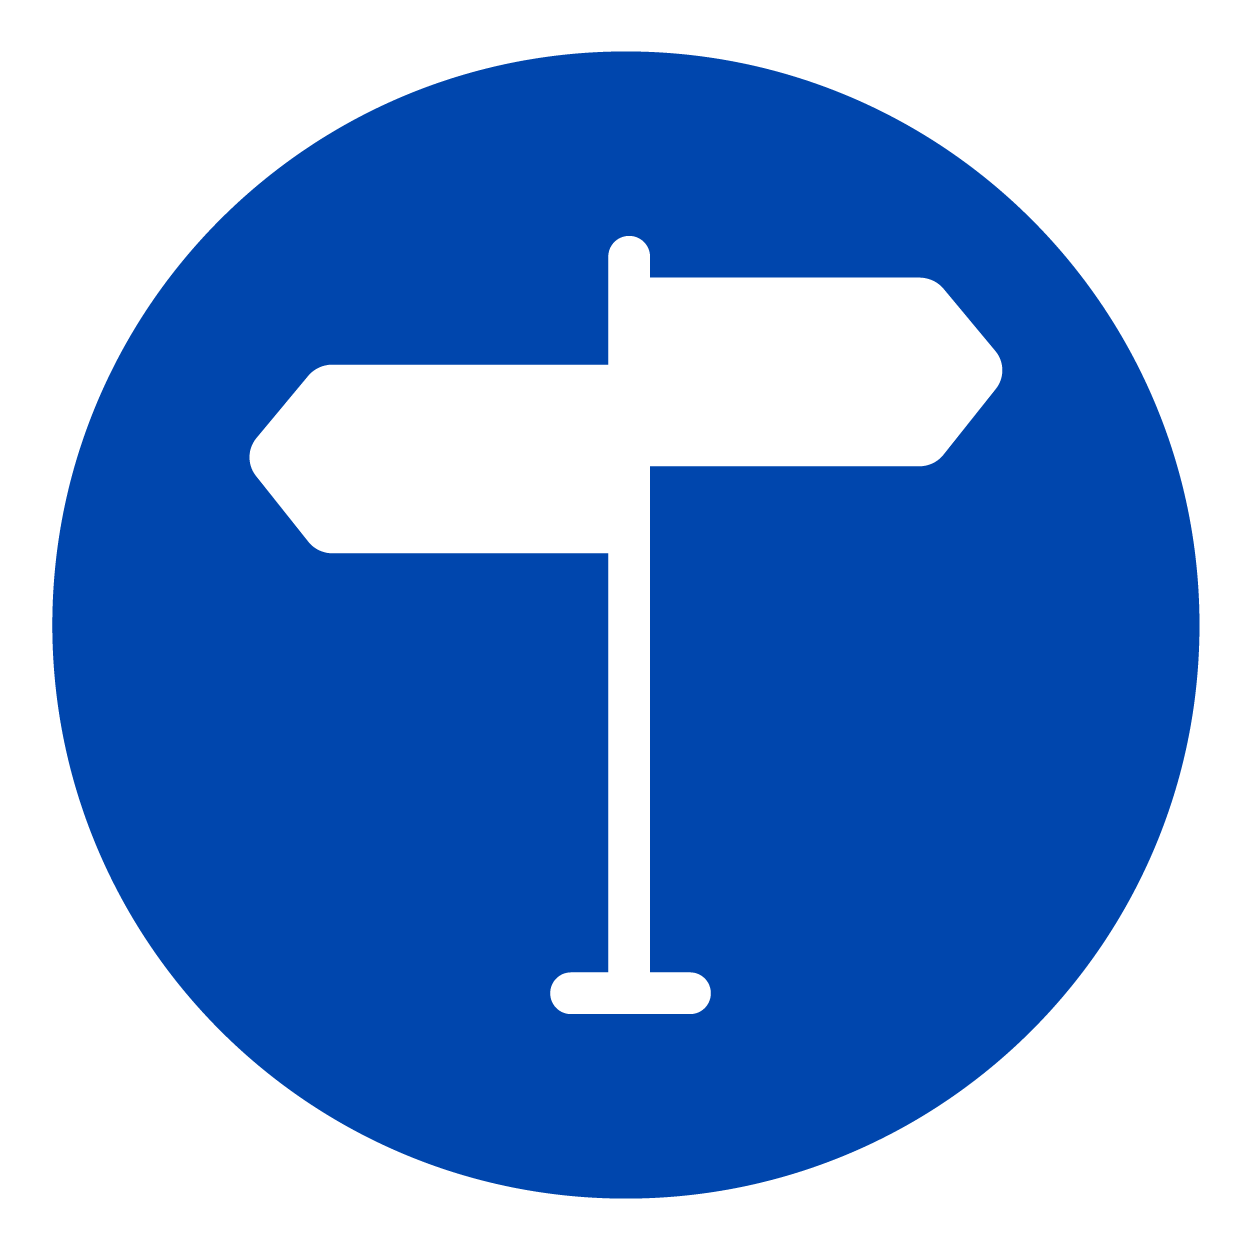 Icon of Road Signs